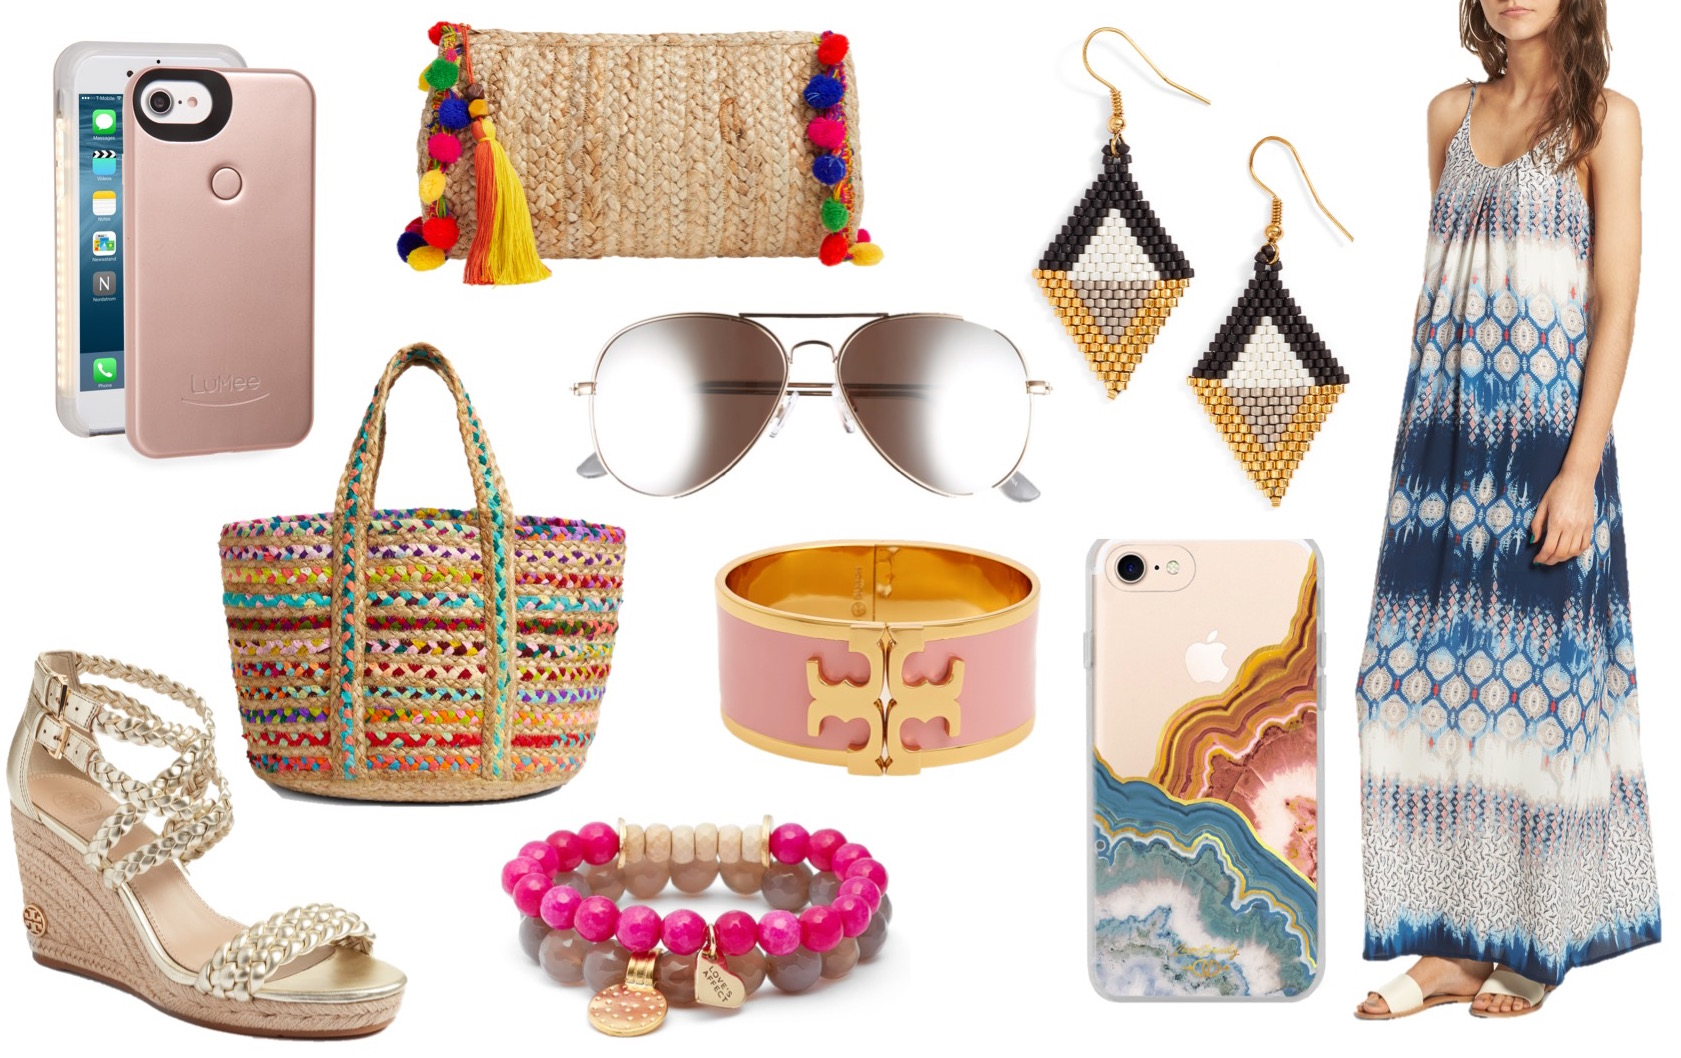 New Jewelry, iPhone Cases & Summer Accessories